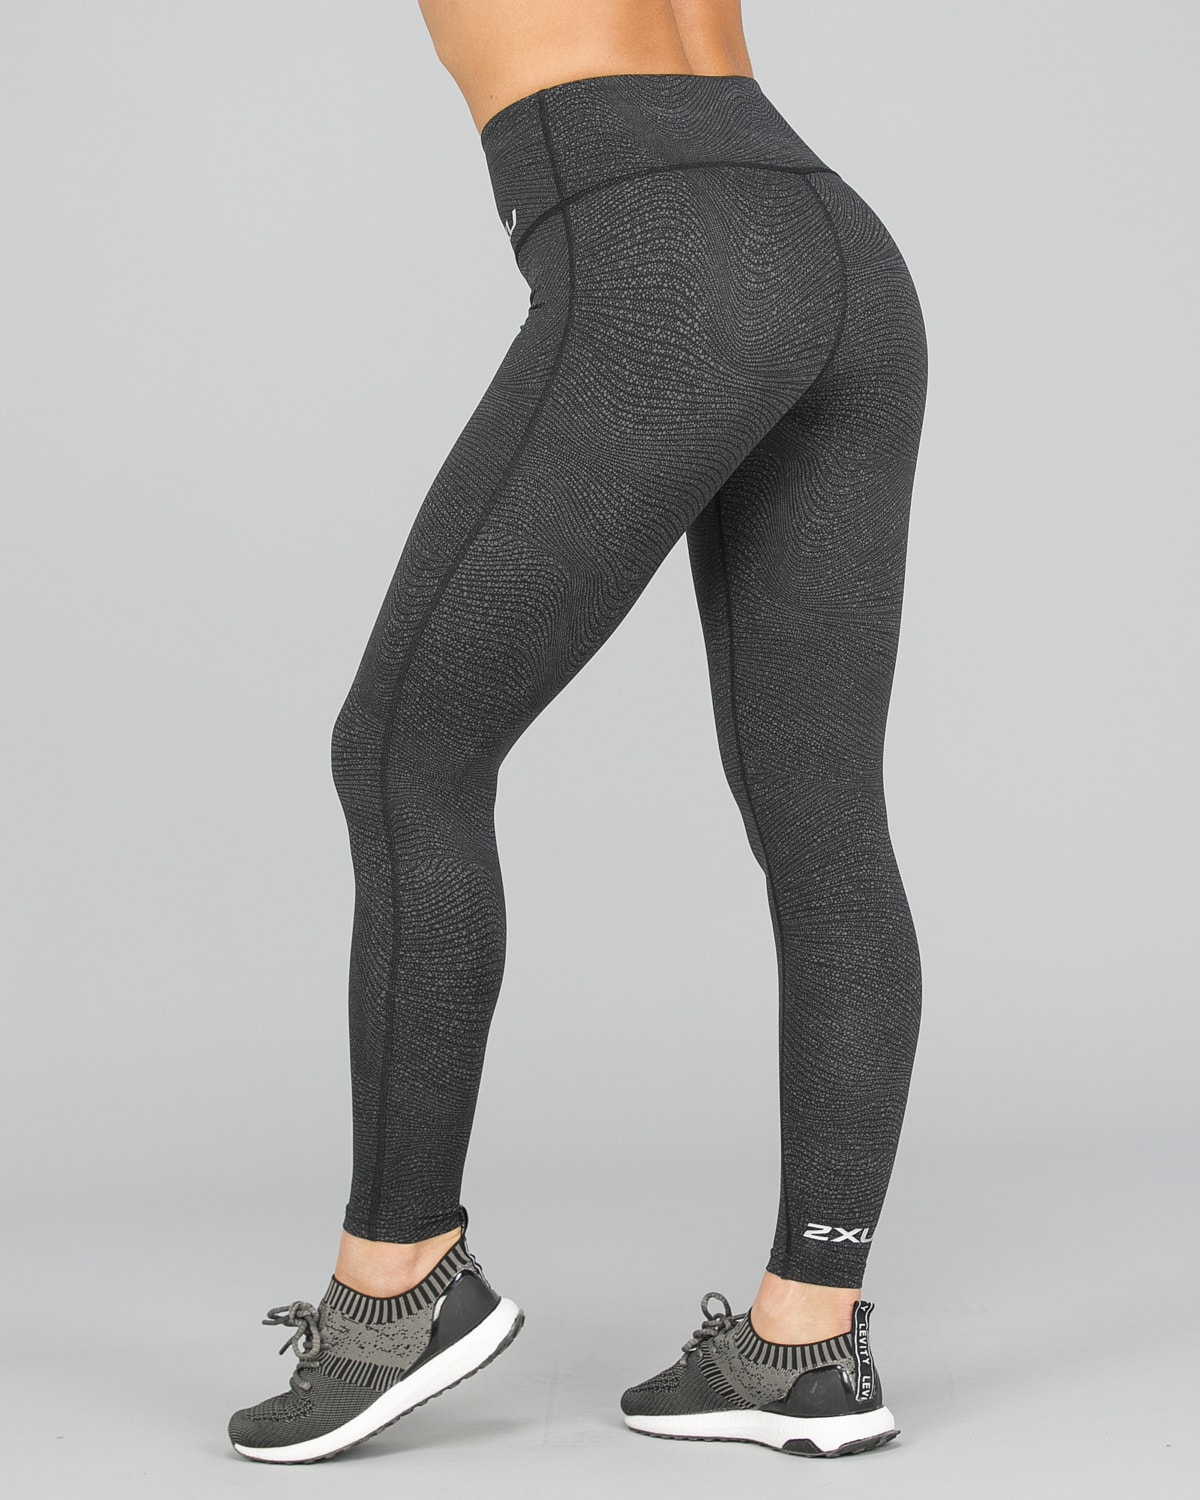 2XU Fitness Hi-Rise Comp Tights Women – Wave Spot Charcoal:Silver8